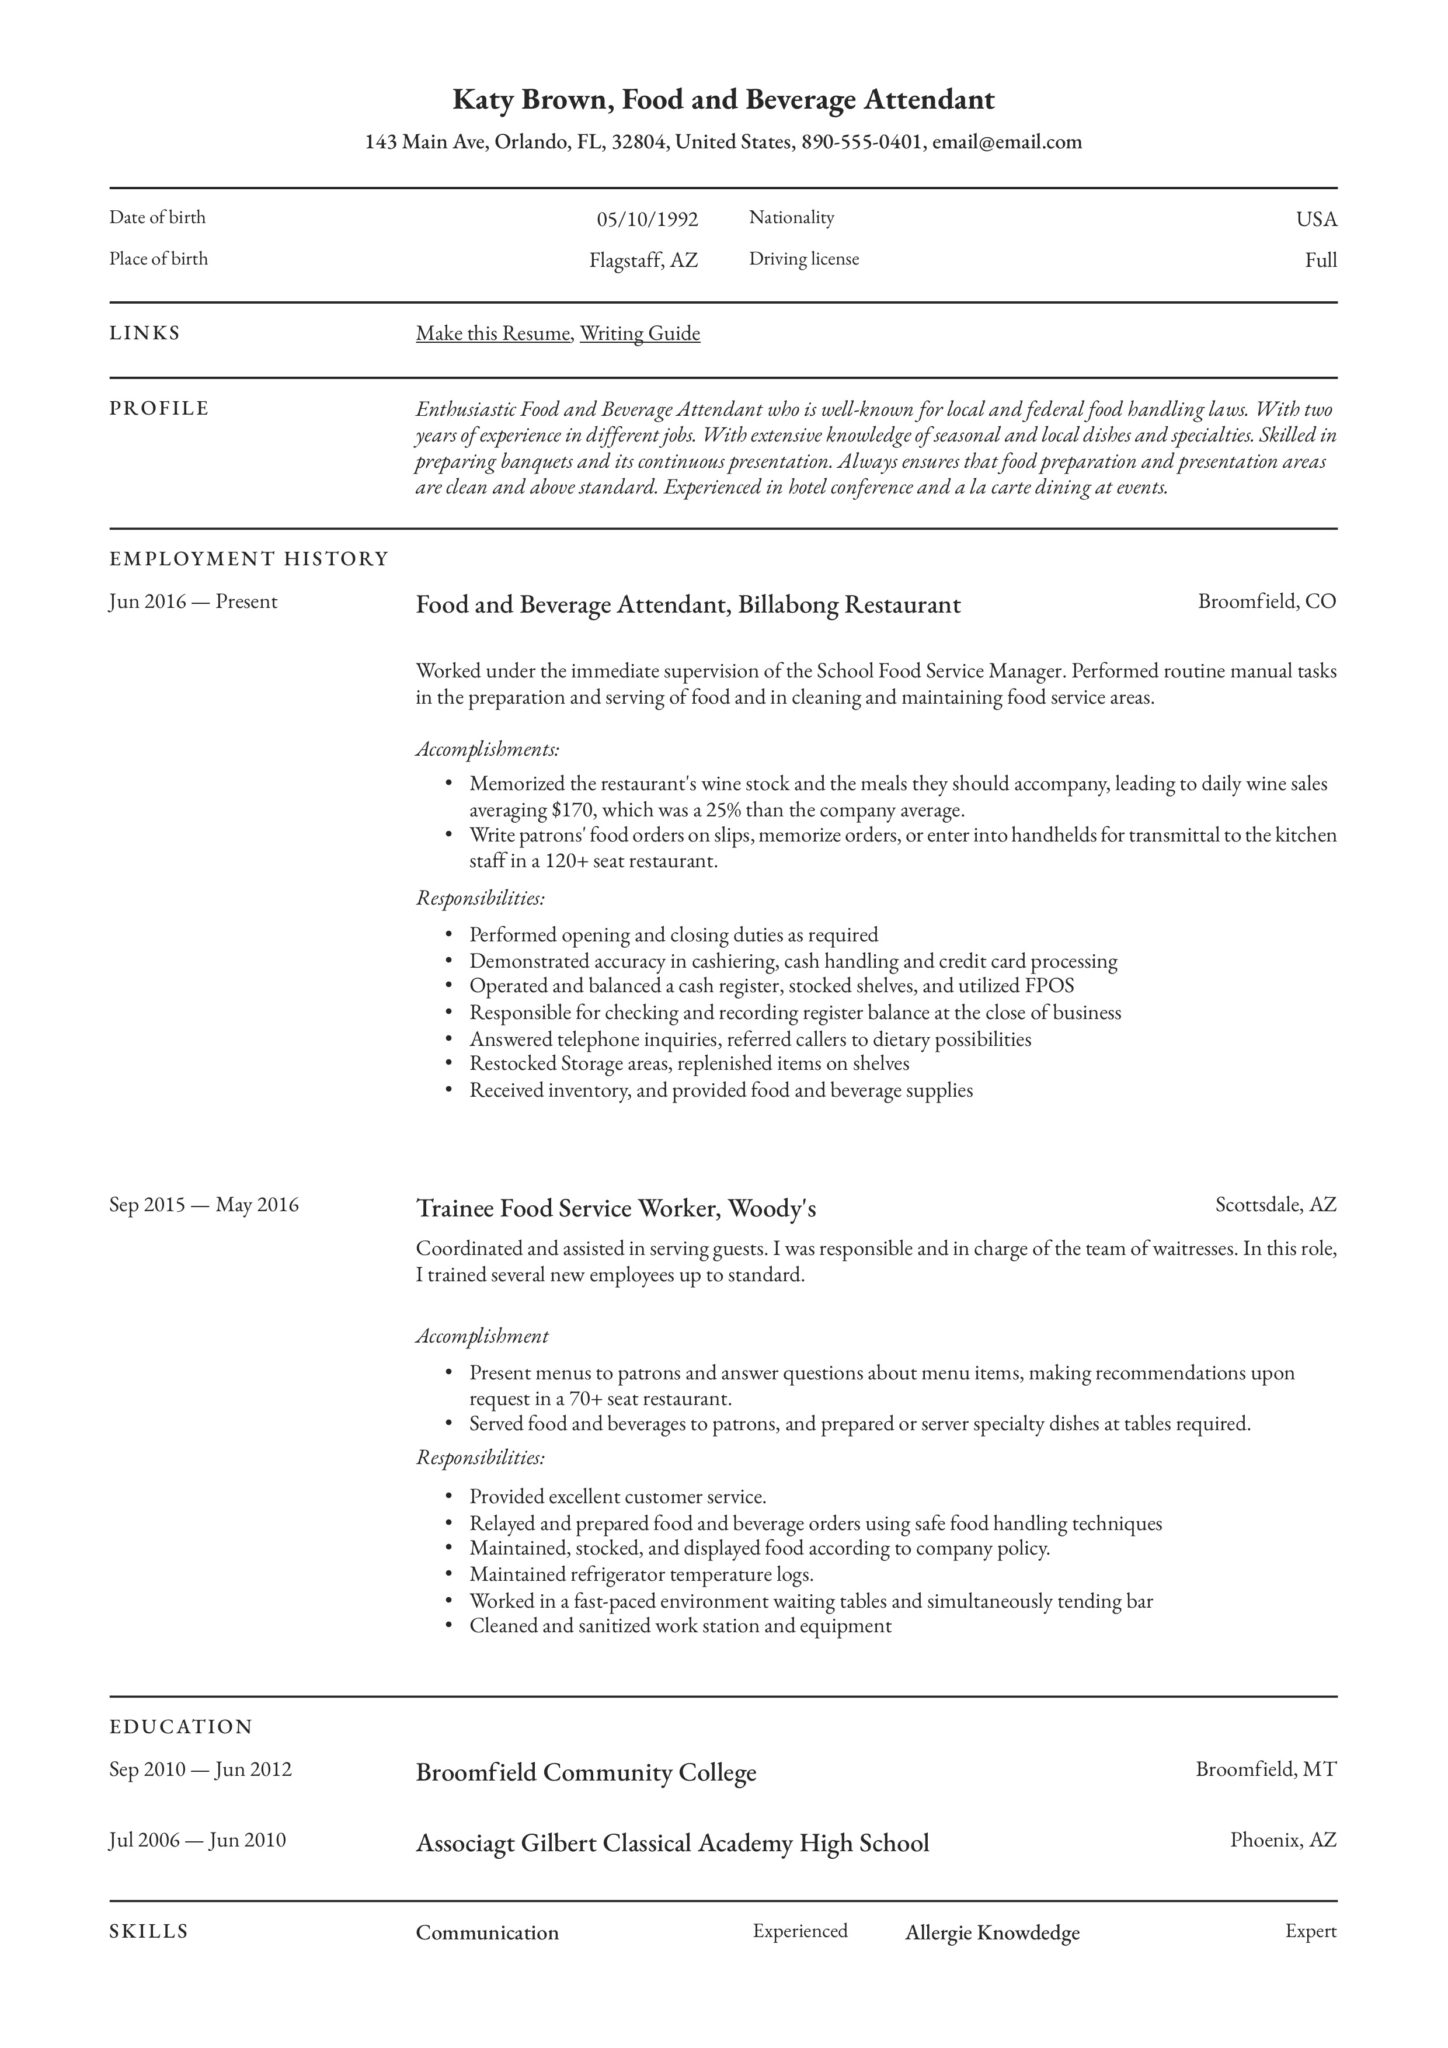 professional food and beverage attendant resume